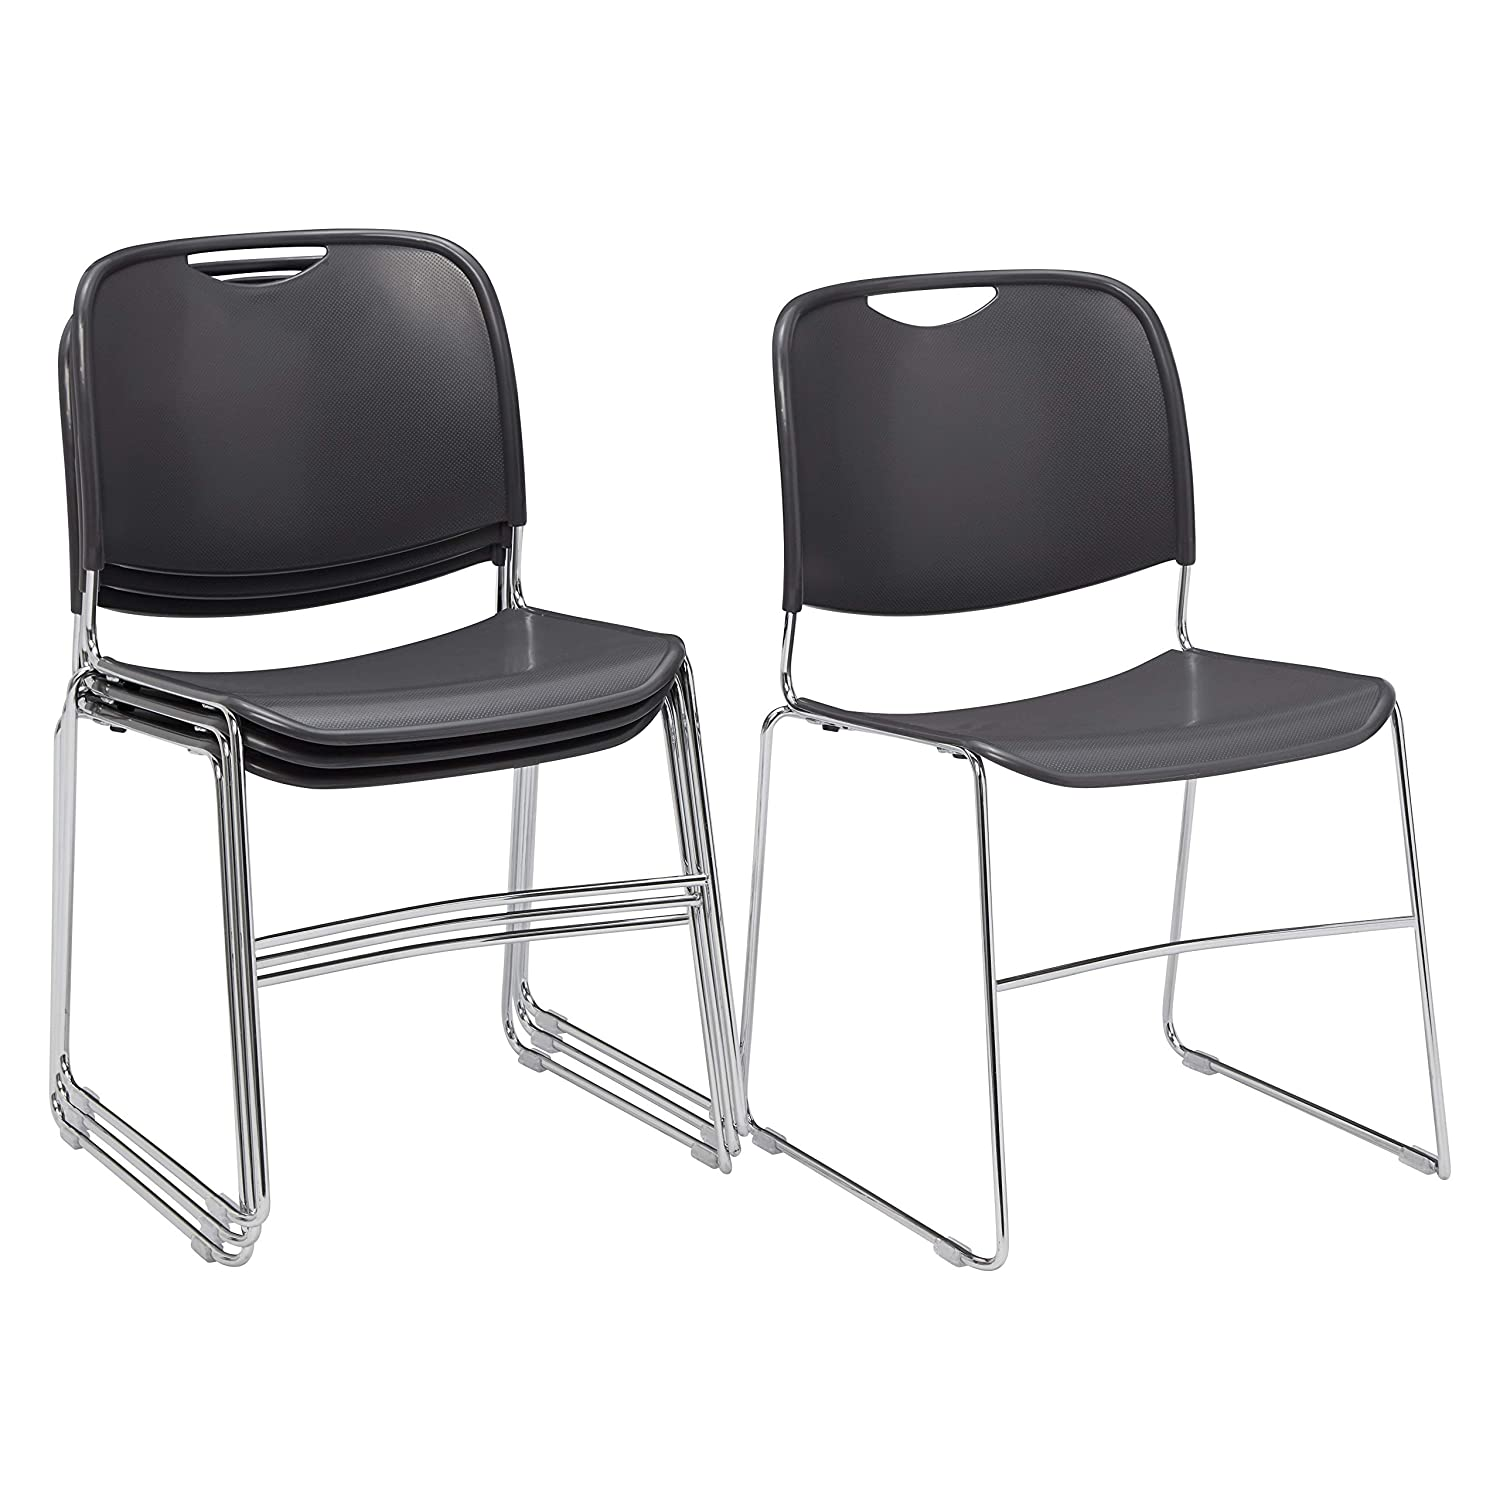 4 Pack National Public Seating 8500 Series Ultra-Compact Plastic Stack Chair, Gunmetal